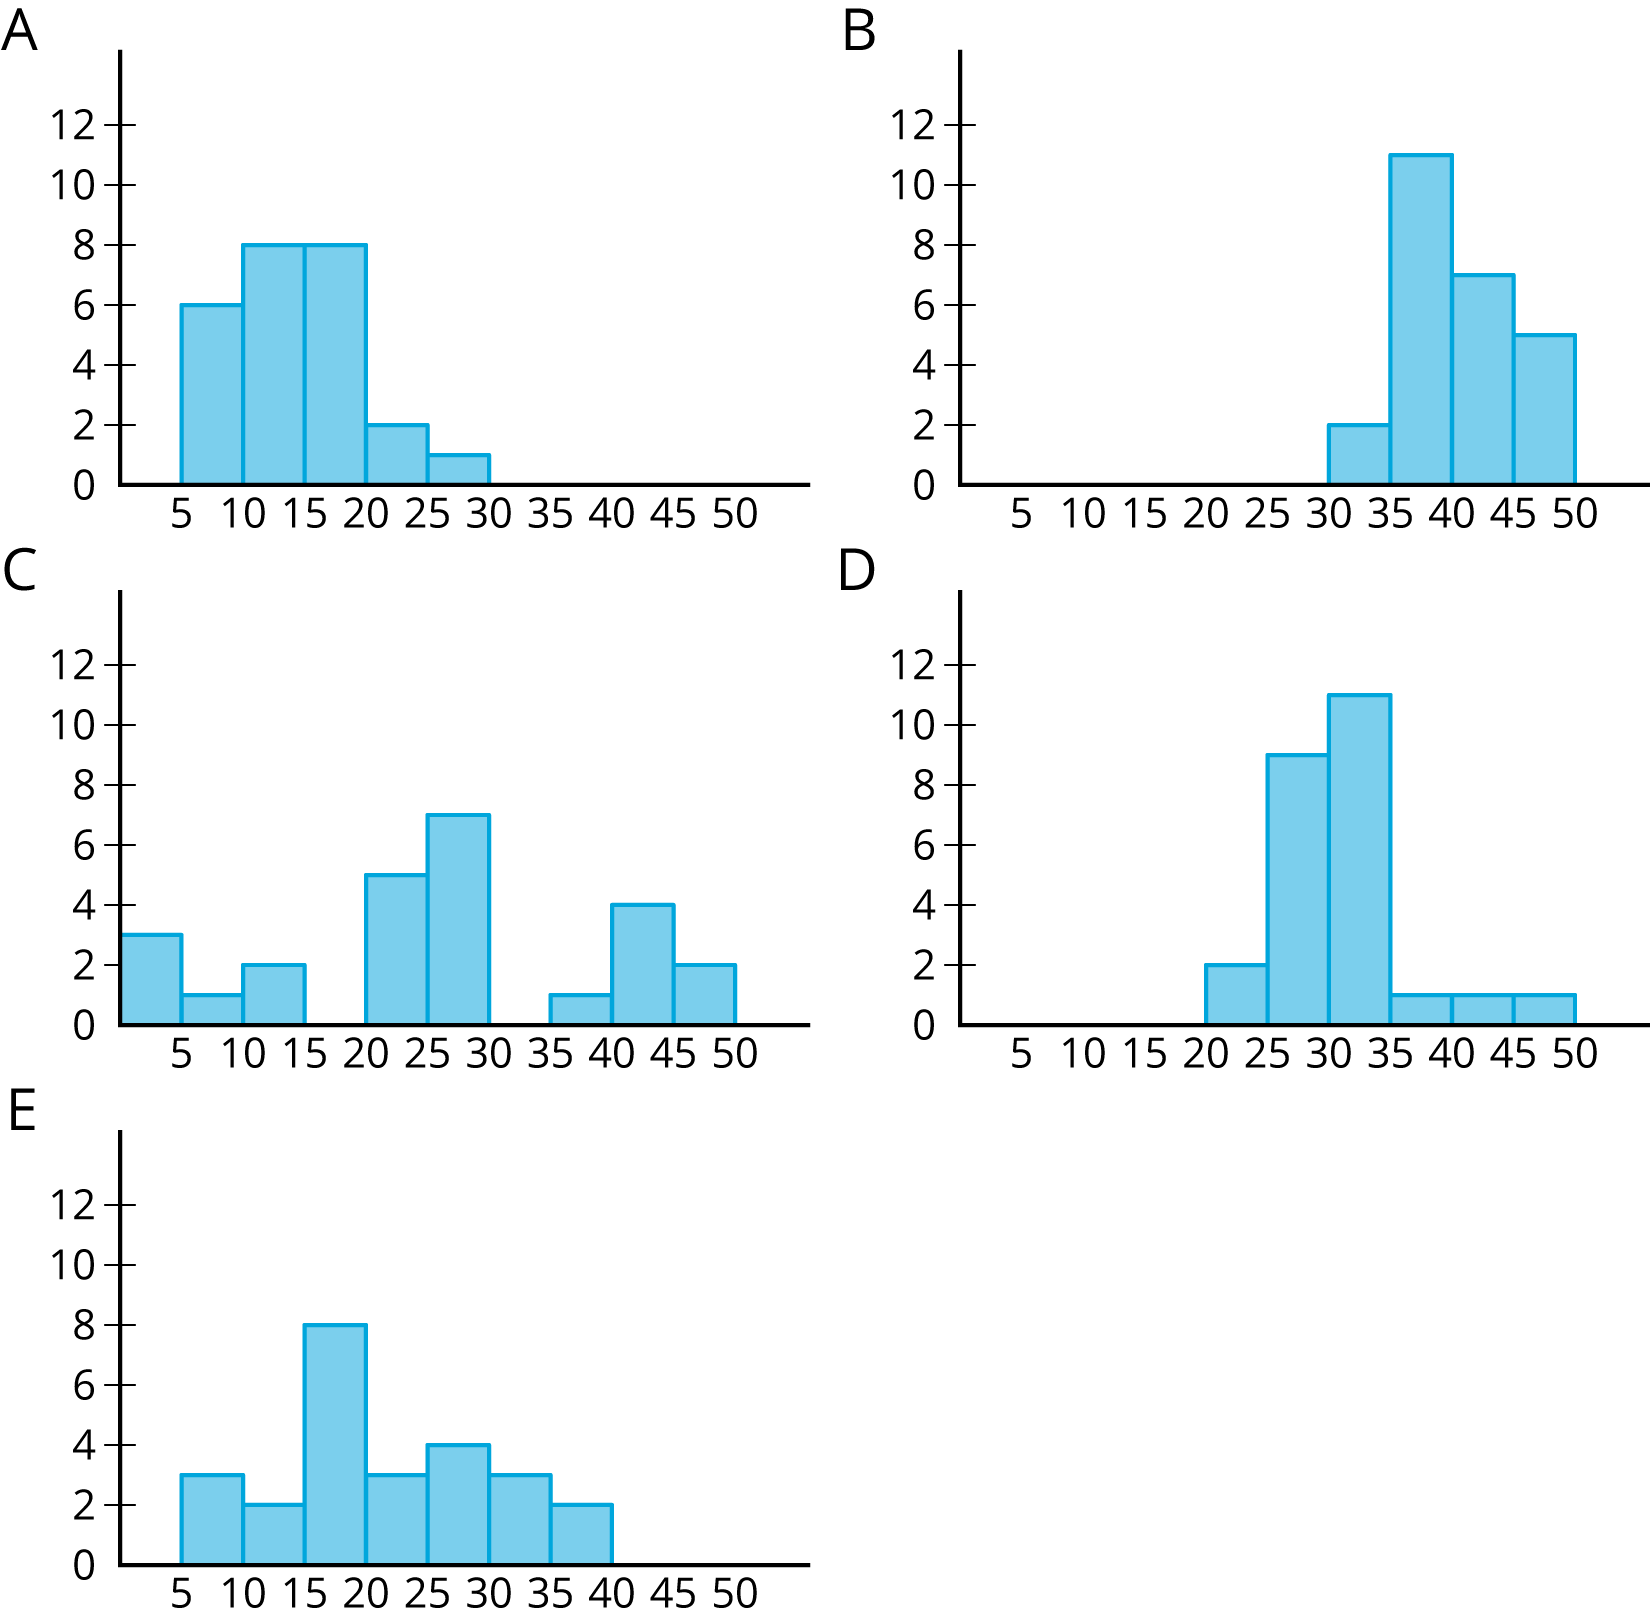 "There are 5 histograms labeled A, B, C, D, and E.  Each histogram has a horizontal axis with 0 through 50, in increments of 5, are indicated.  The vertical axis has 0 through 12, in increments of 2, indicated.  The height of the bars for ""histogram A"" are as follows:  from 5 up to 10, 6; from 10 up to 15, 8, from 15 up to 20, 8; from 20 up to 25, 2; from 25 up to 30, 1. The height of the bars ""histogram B"" are as follows:  from 30 up to 35, 2; from 35 up to 40, 11; from 40 up to 45, 7; from 45 up to 50, 5. The height of the bars for ""histogram C"" are as follows:  from 0 up to 5, 3; from 5 up to 10, 1; from 10 up to 15, 2; from 15 up to 20, 0; from 20 up to 25, 5; from 25 up to 30, 7; from 30 up to 35, 0; from 35 up to 40, 1; from 40 up to 45, 4; from 45 up to 50; 2. The height of the bars for ""histogram D"" are as follows:  from 20 up to 25, 2; from 25 up to 30, 9; from 30 up to 35, 11; from 35 up to 40, 1; from 40 up to 45, 1; from 45 up to 50, 1. The height of the bars for ""histogram E"" are as follows:  from 5 up to 10, 3; from 10 up to 15, 2; from 15 up to 20, 8; from 20 up to 25, 3; from 25 up to 30, 4; from 30 up to 35, 3; from 35 up to 40, 2."